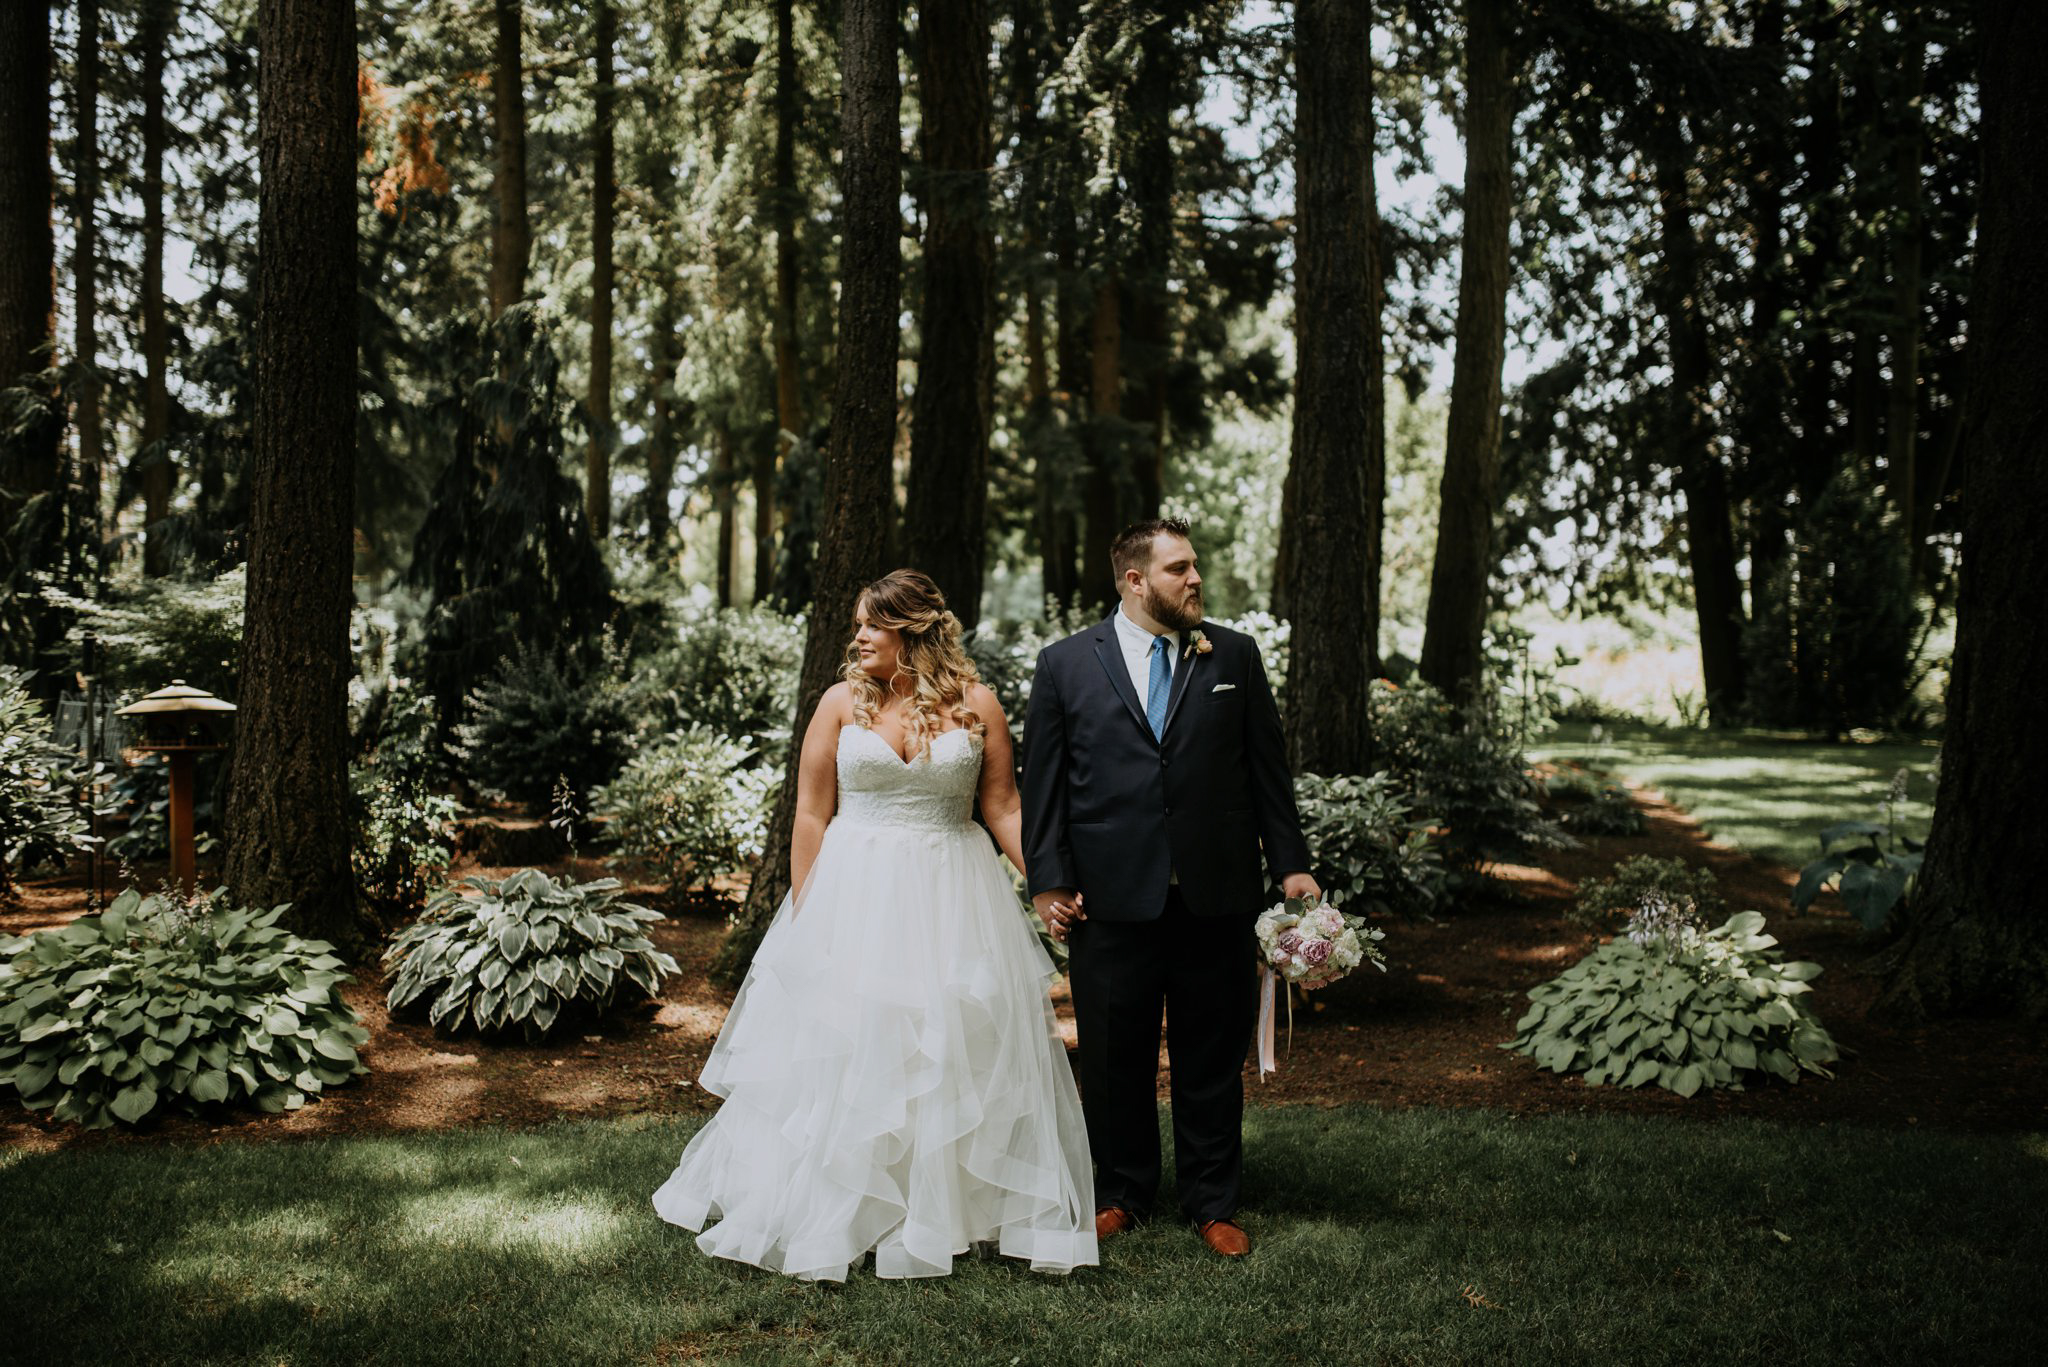 evergreen-gardens-bellingham-wedding-seattle-photographer-caitlyn-nikula-38.jpg